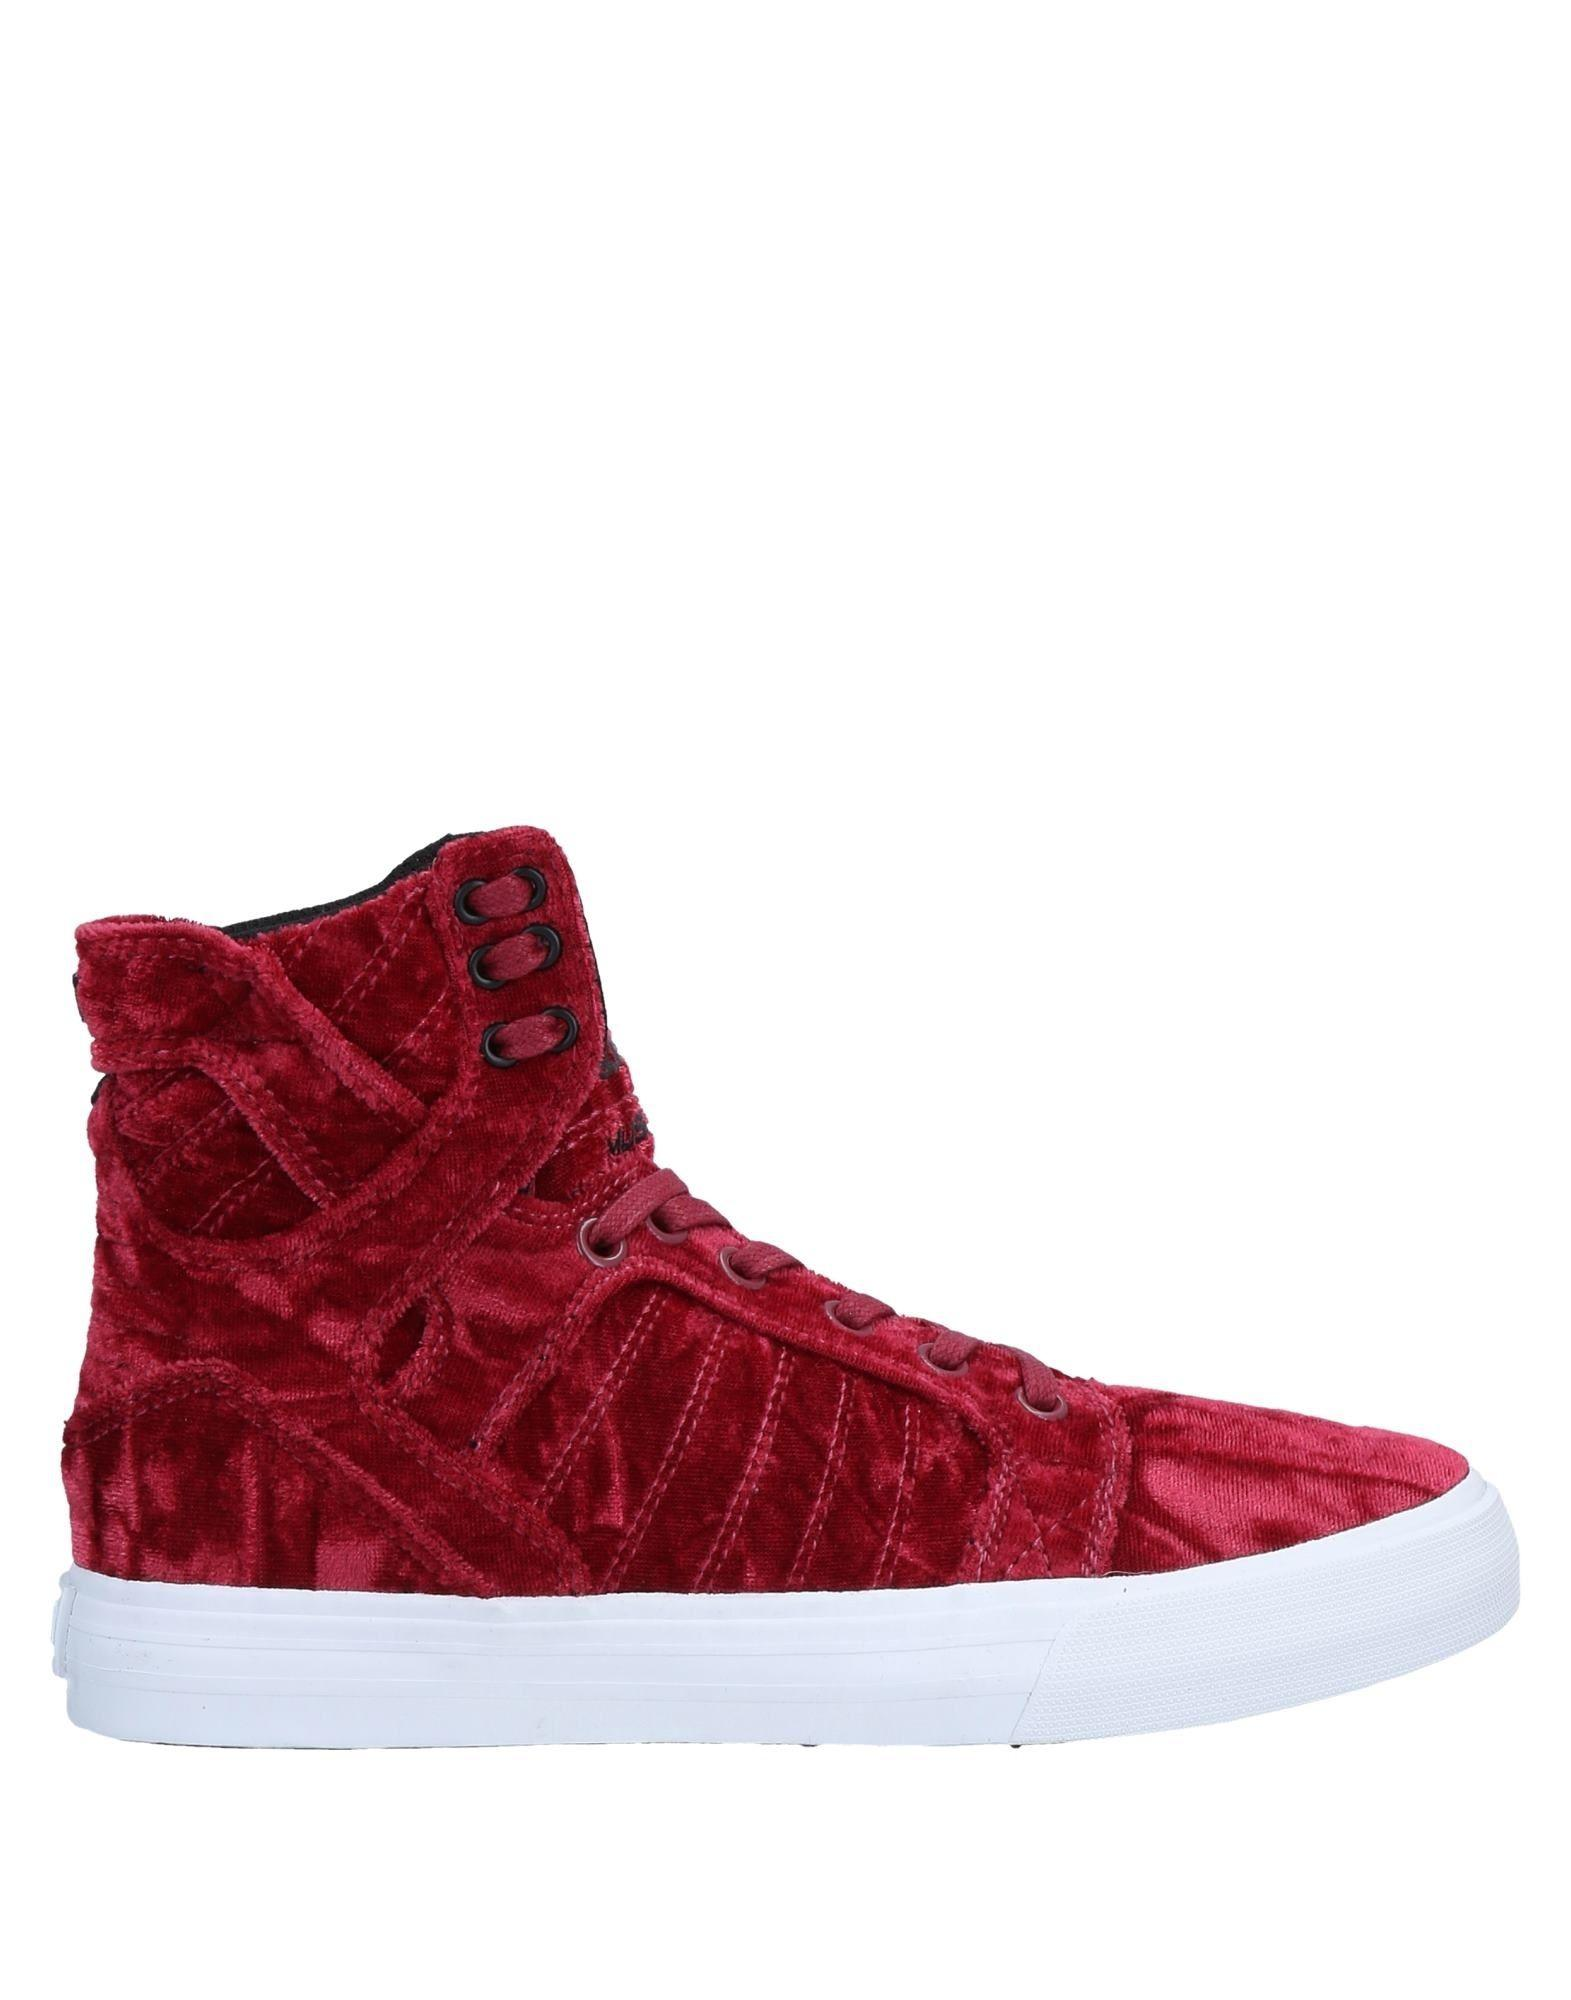 bf10fd2d8785 Supra High-tops   Sneakers in Red - Lyst